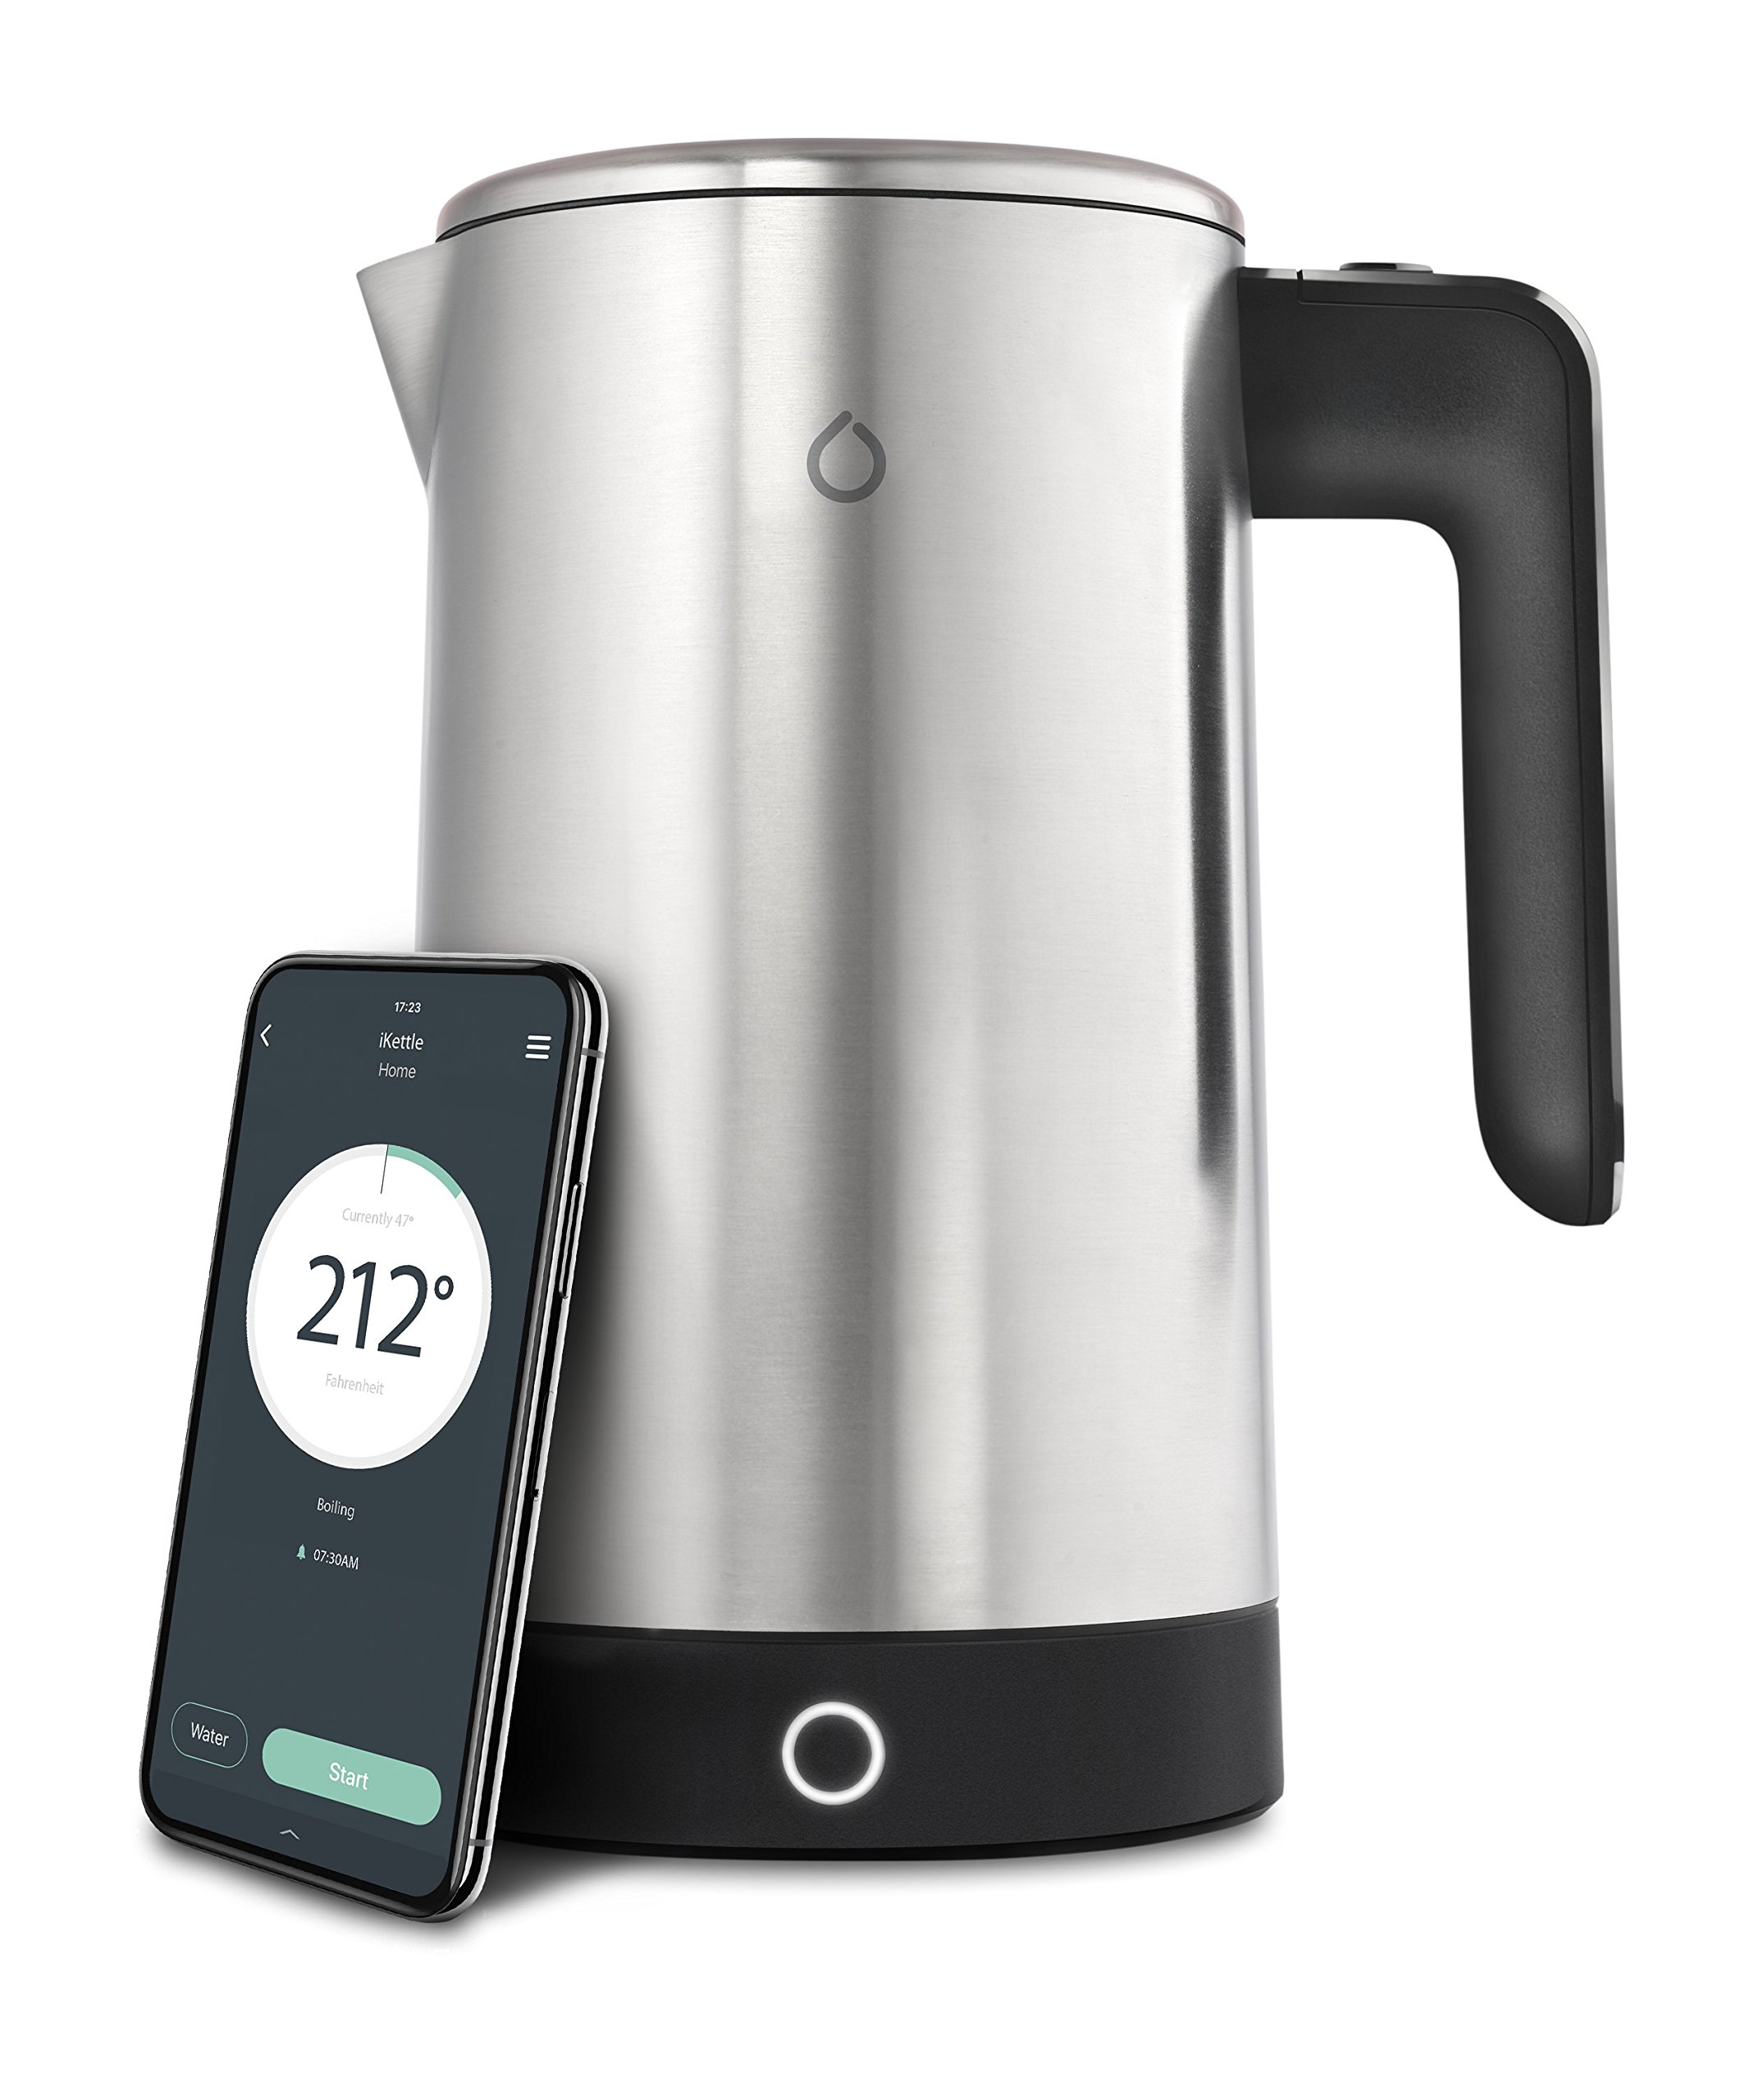 Smarter SMKET01-US Electric iKettle, Silver